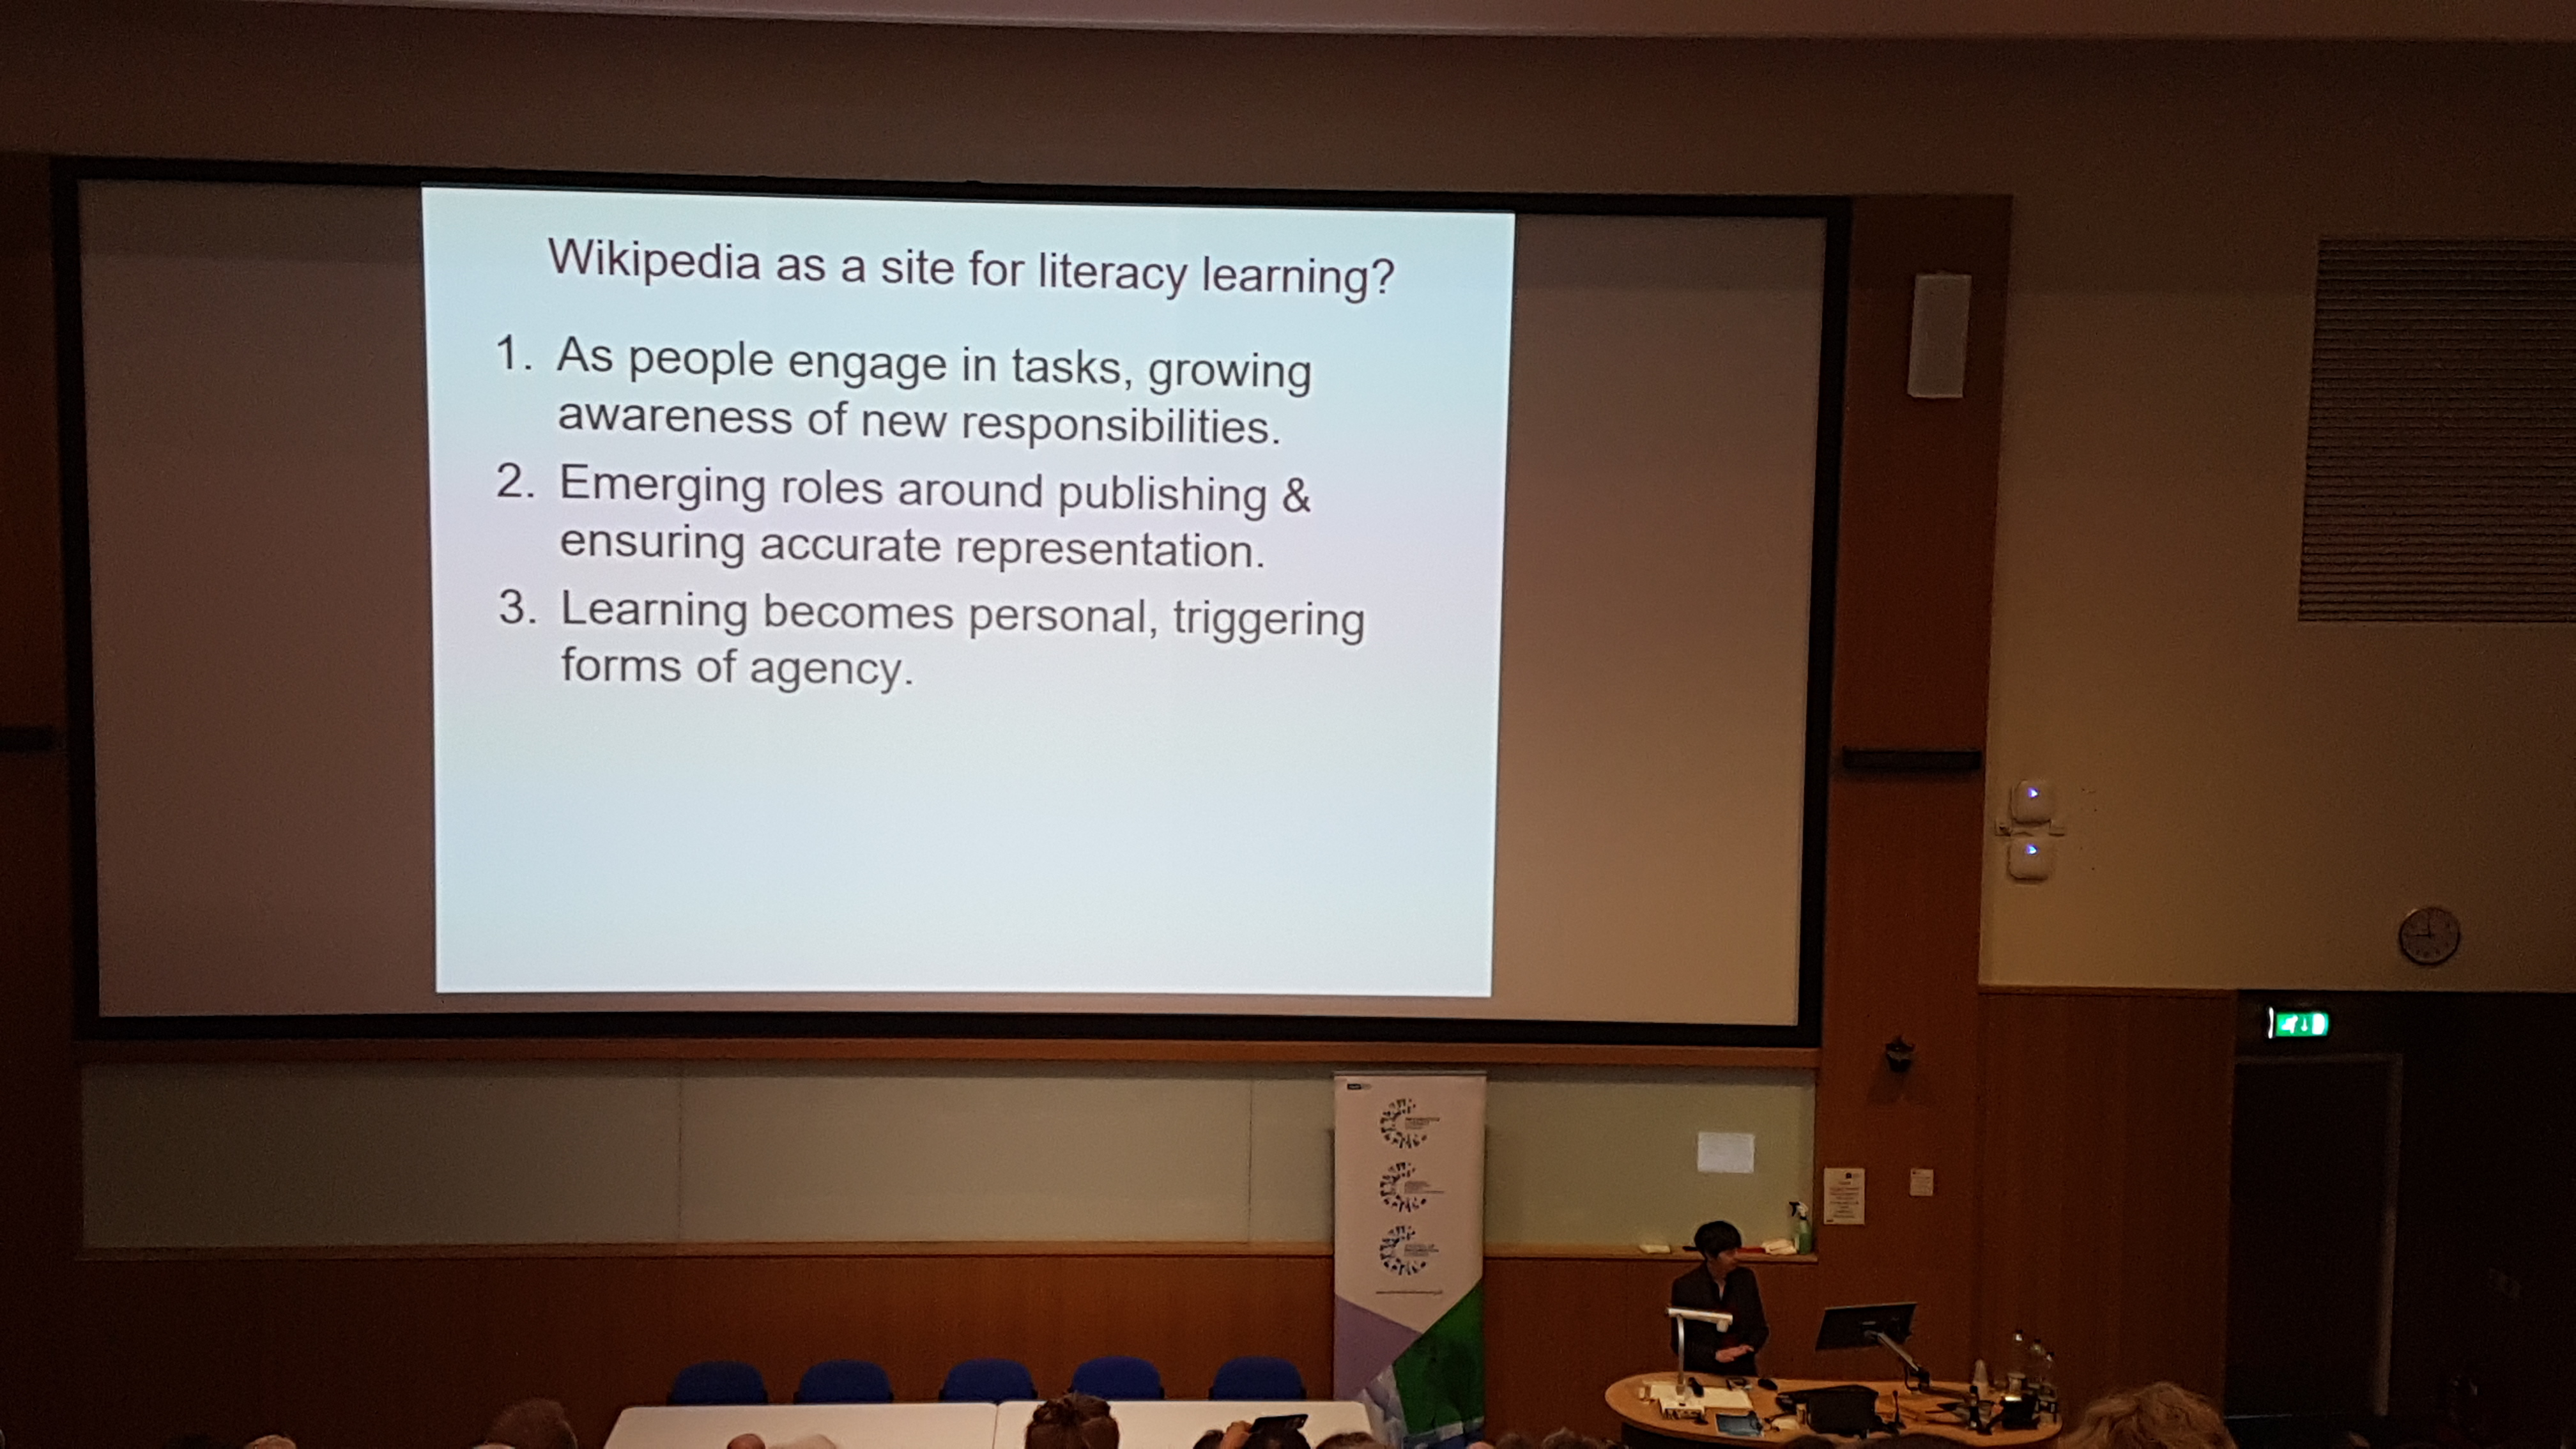 Wikimedian in Residence – Just another thinking is ed ac uk site